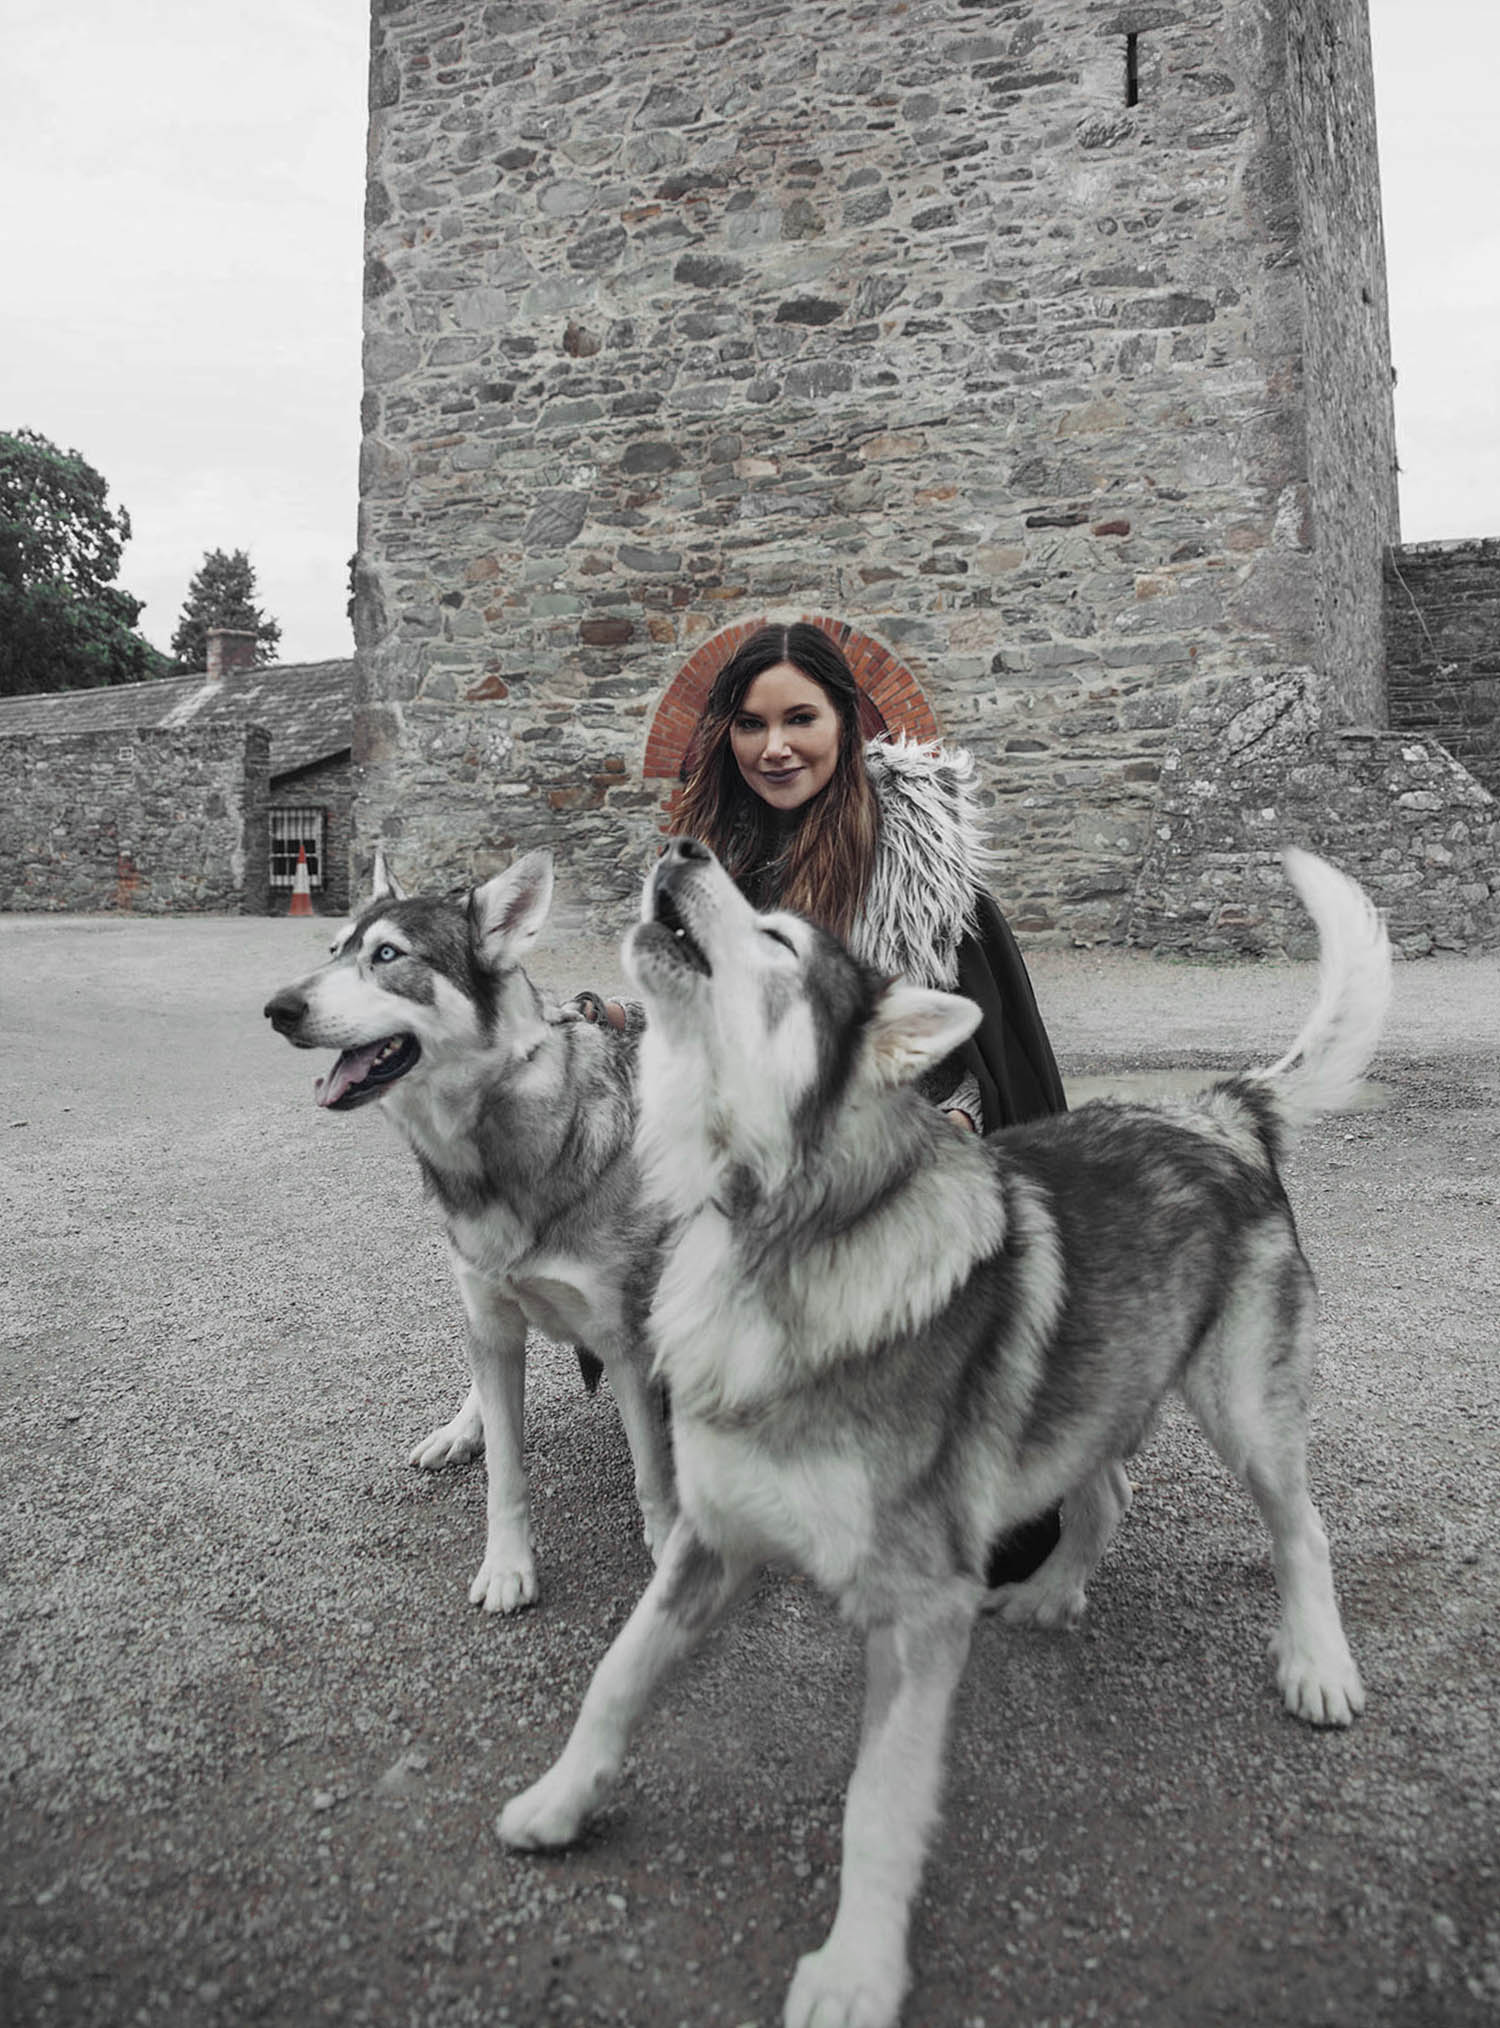 Adaras with direwolves at Winterfell, Game of Thrones Location, Northern Ireland